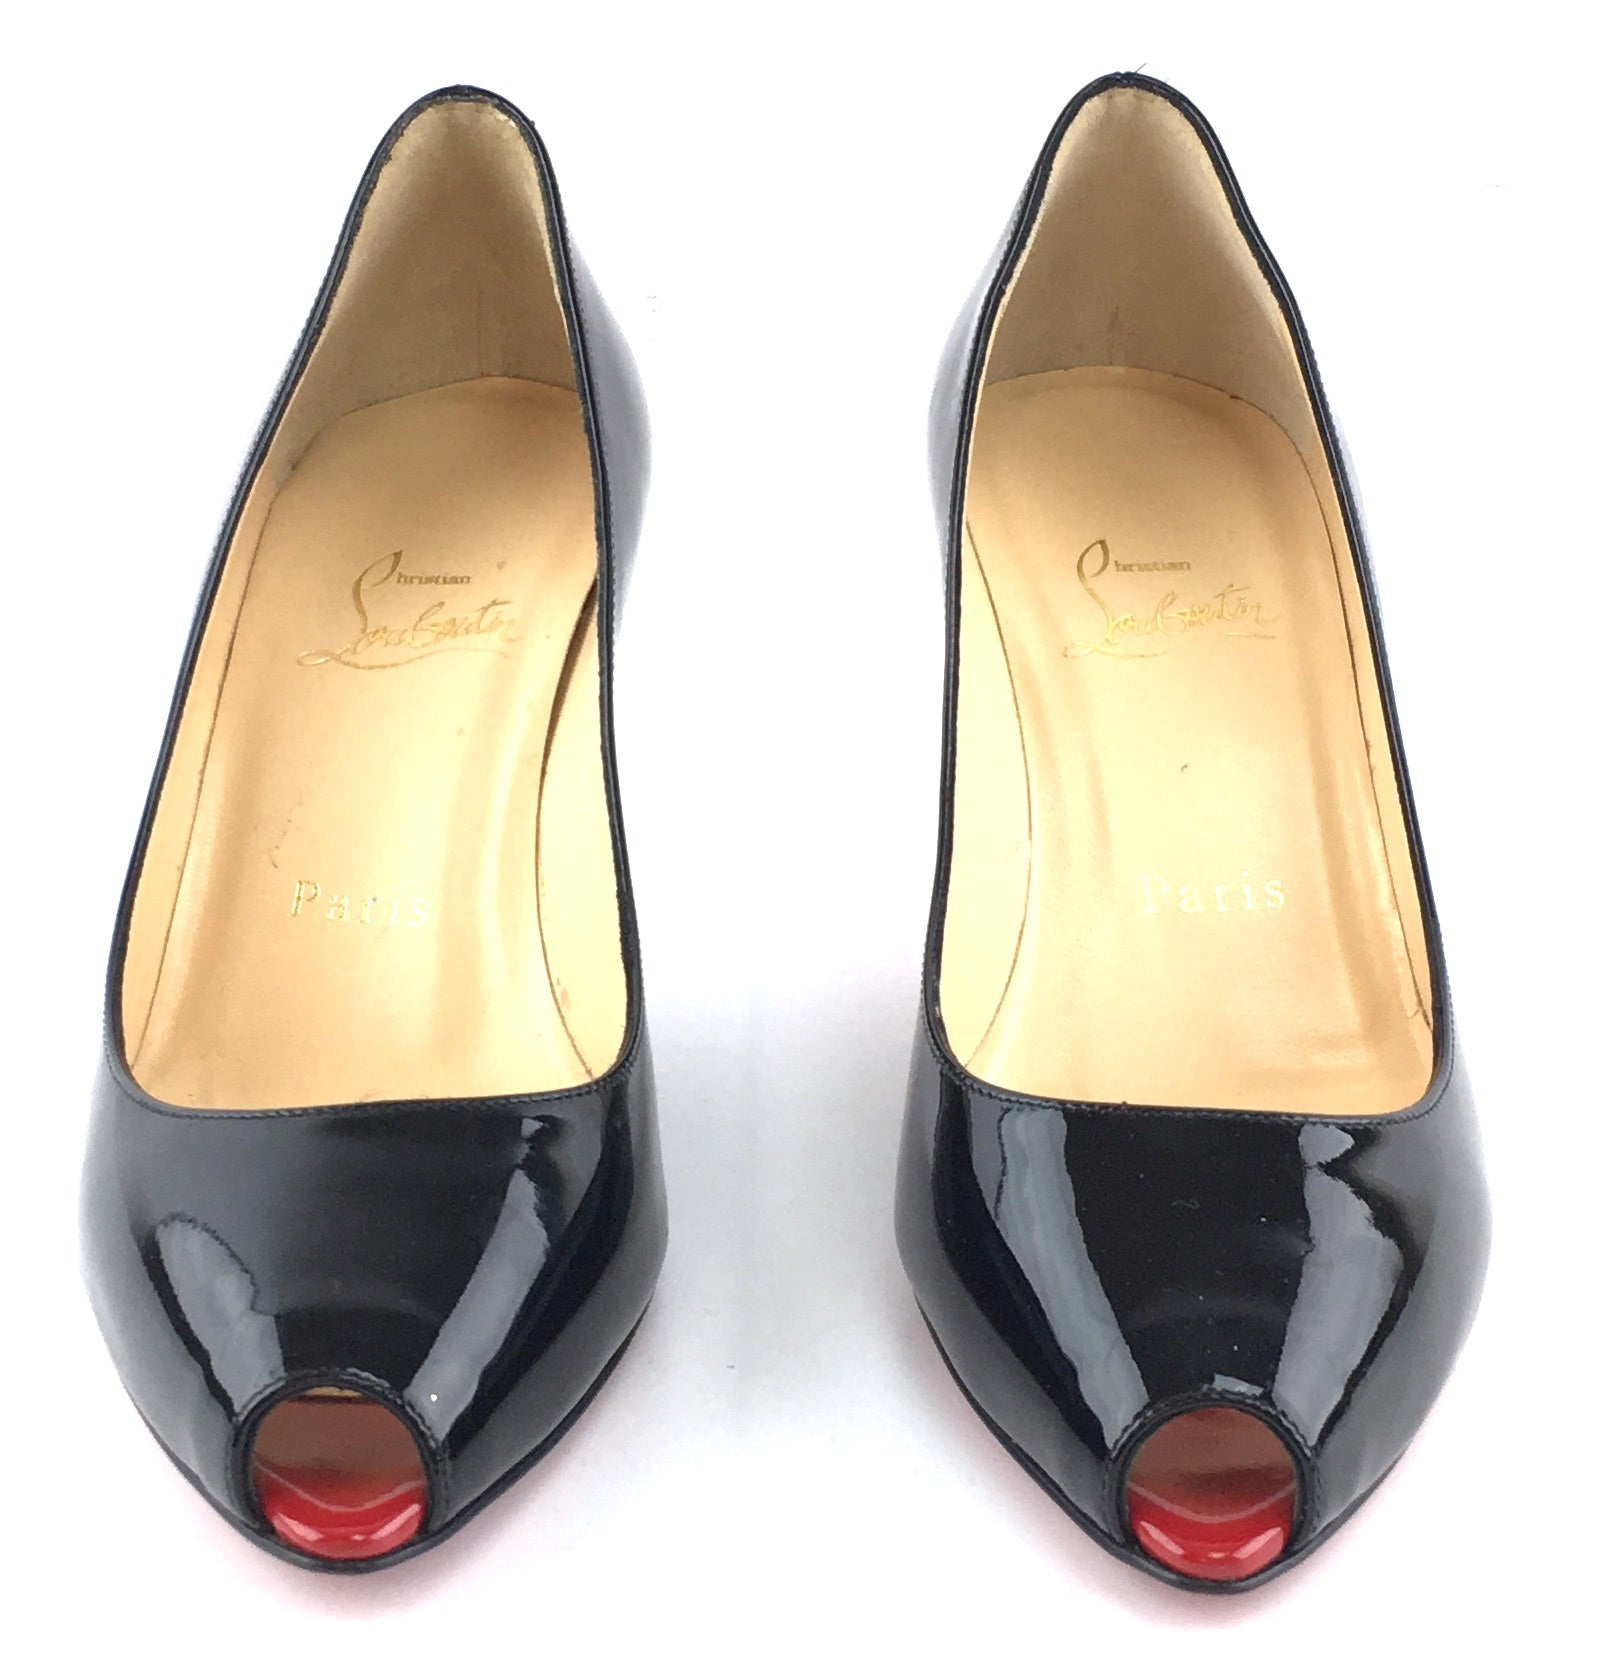 Christian Louboutin Tibur 70 Patent Red/Black Pumps